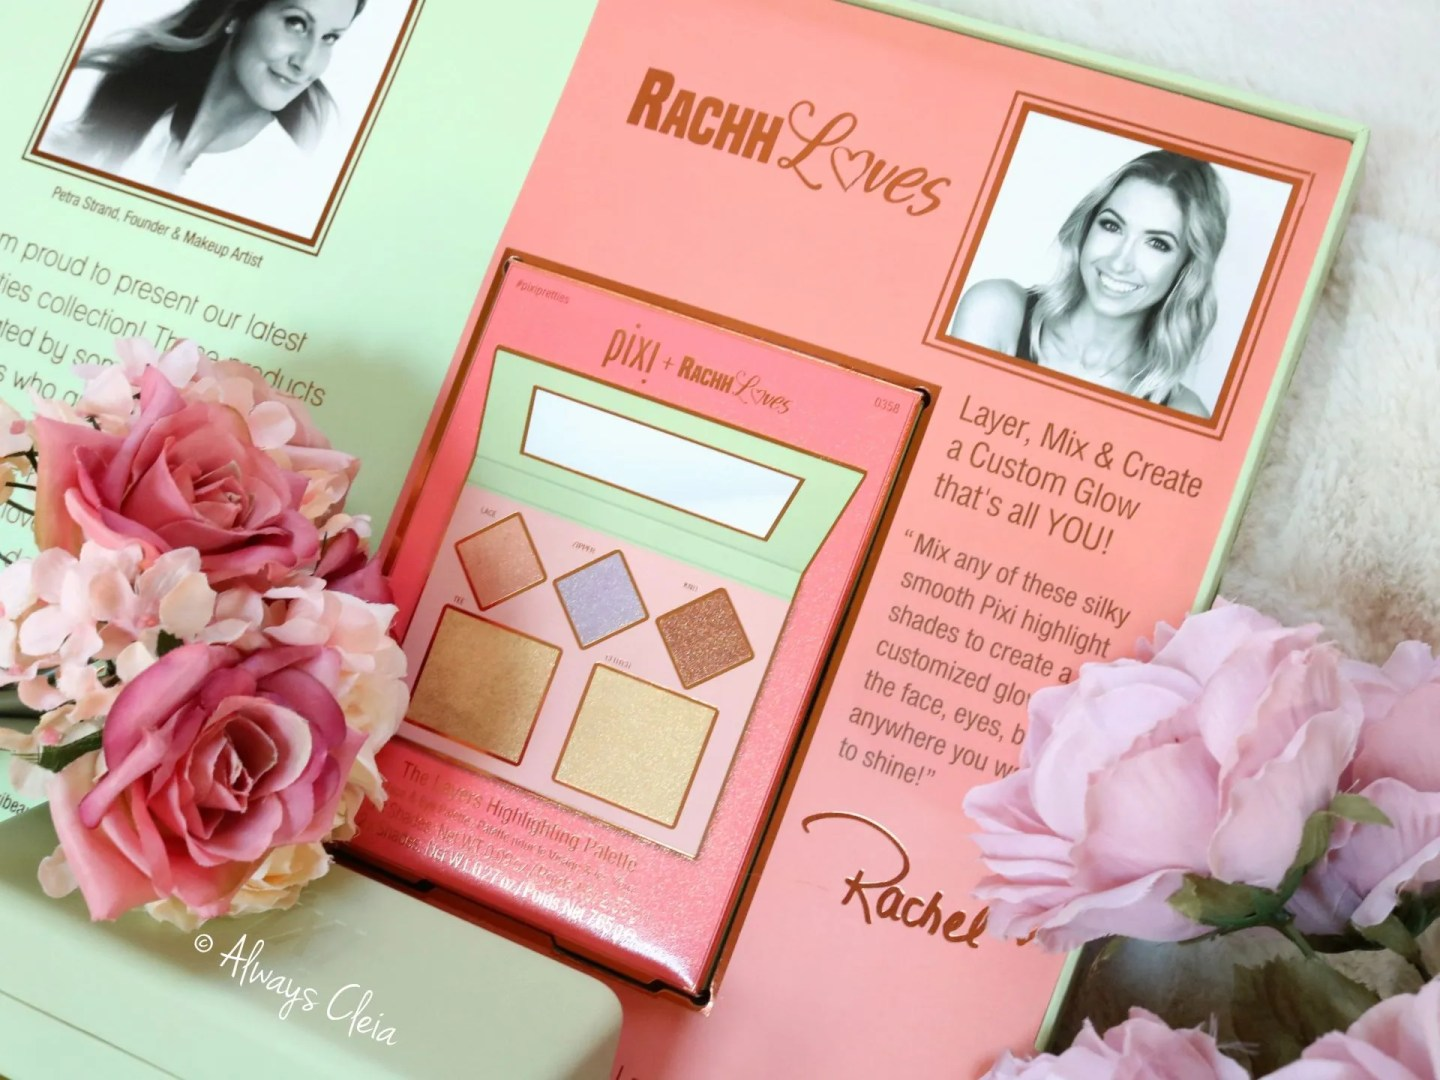 Rachh Loves & Pixi Beauty Collab